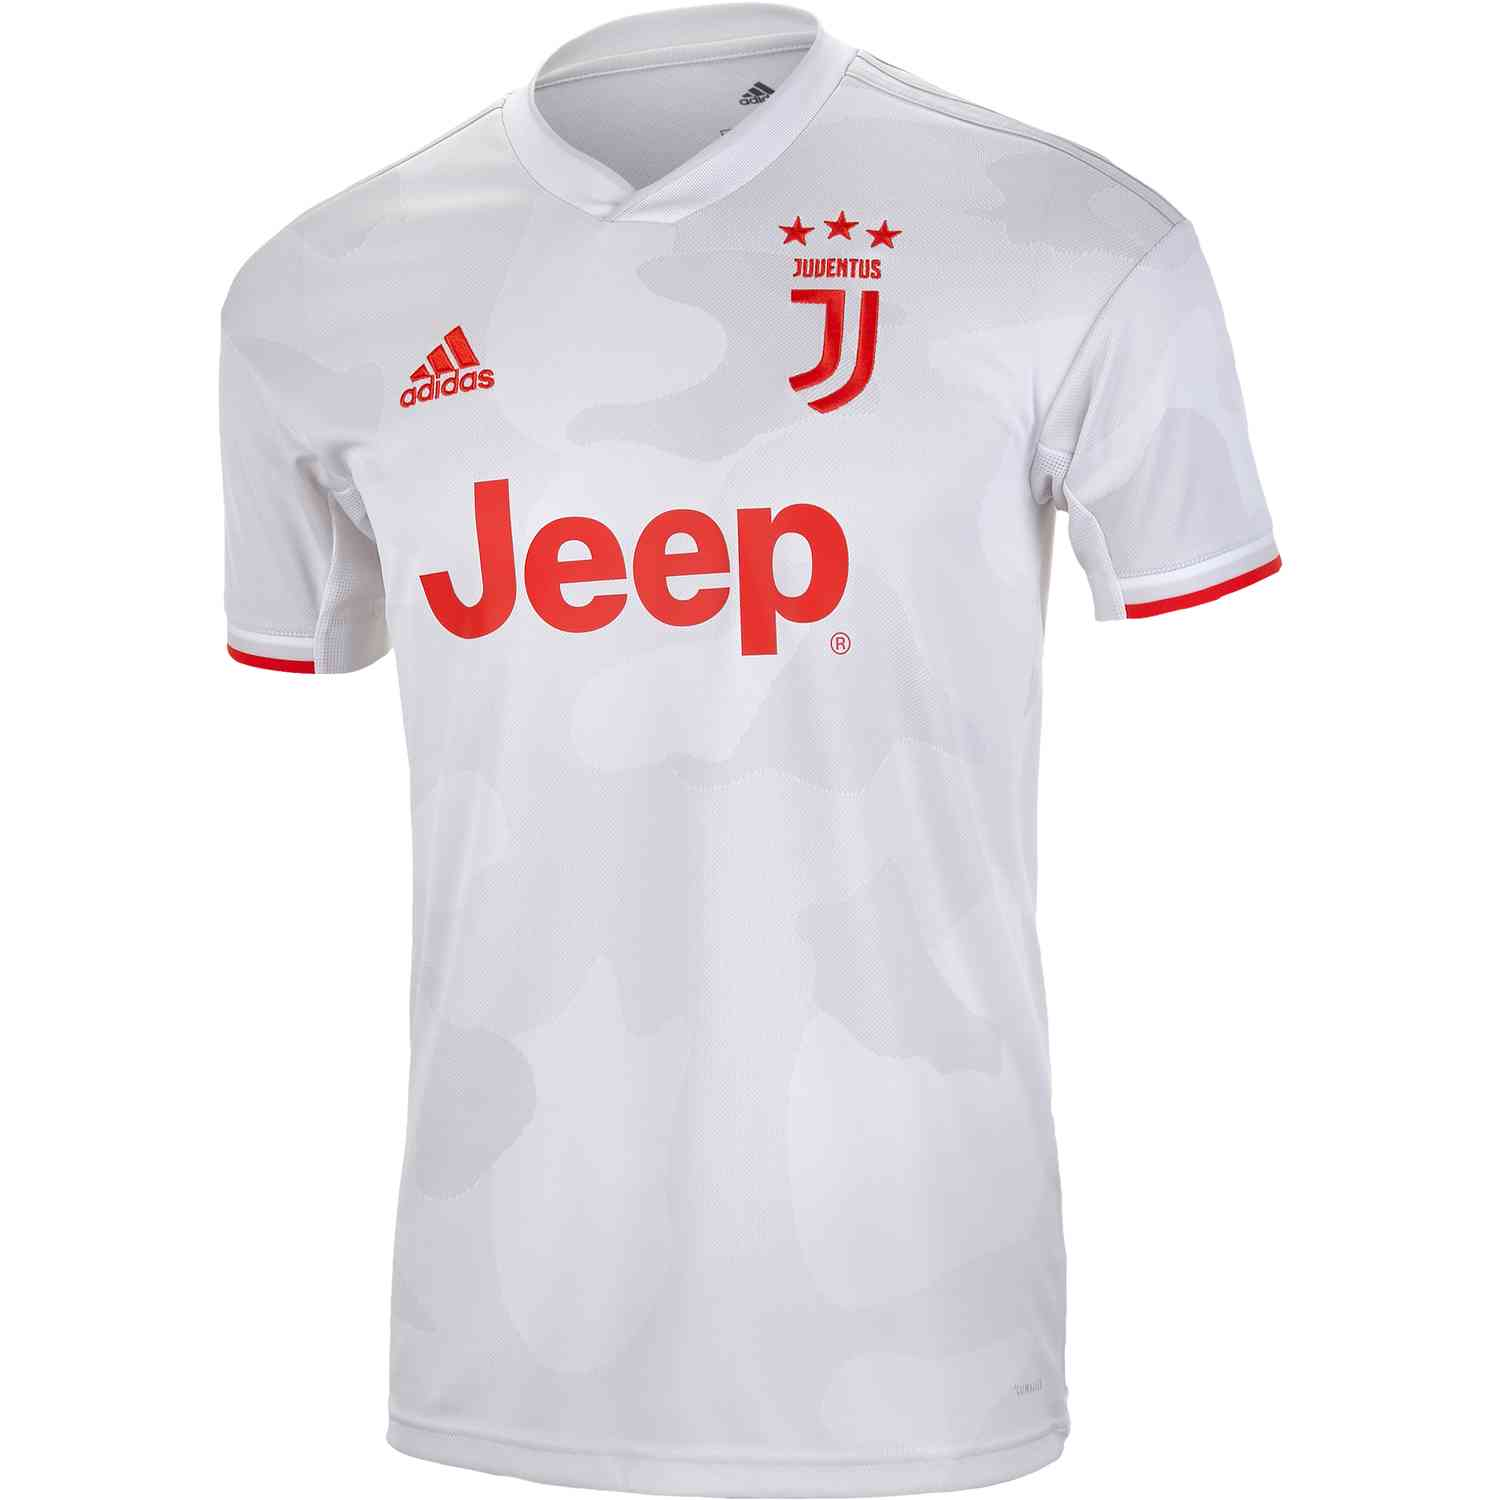 huge selection of 47f2e 7ef3f 2019/20 adidas Juventus Away Jersey